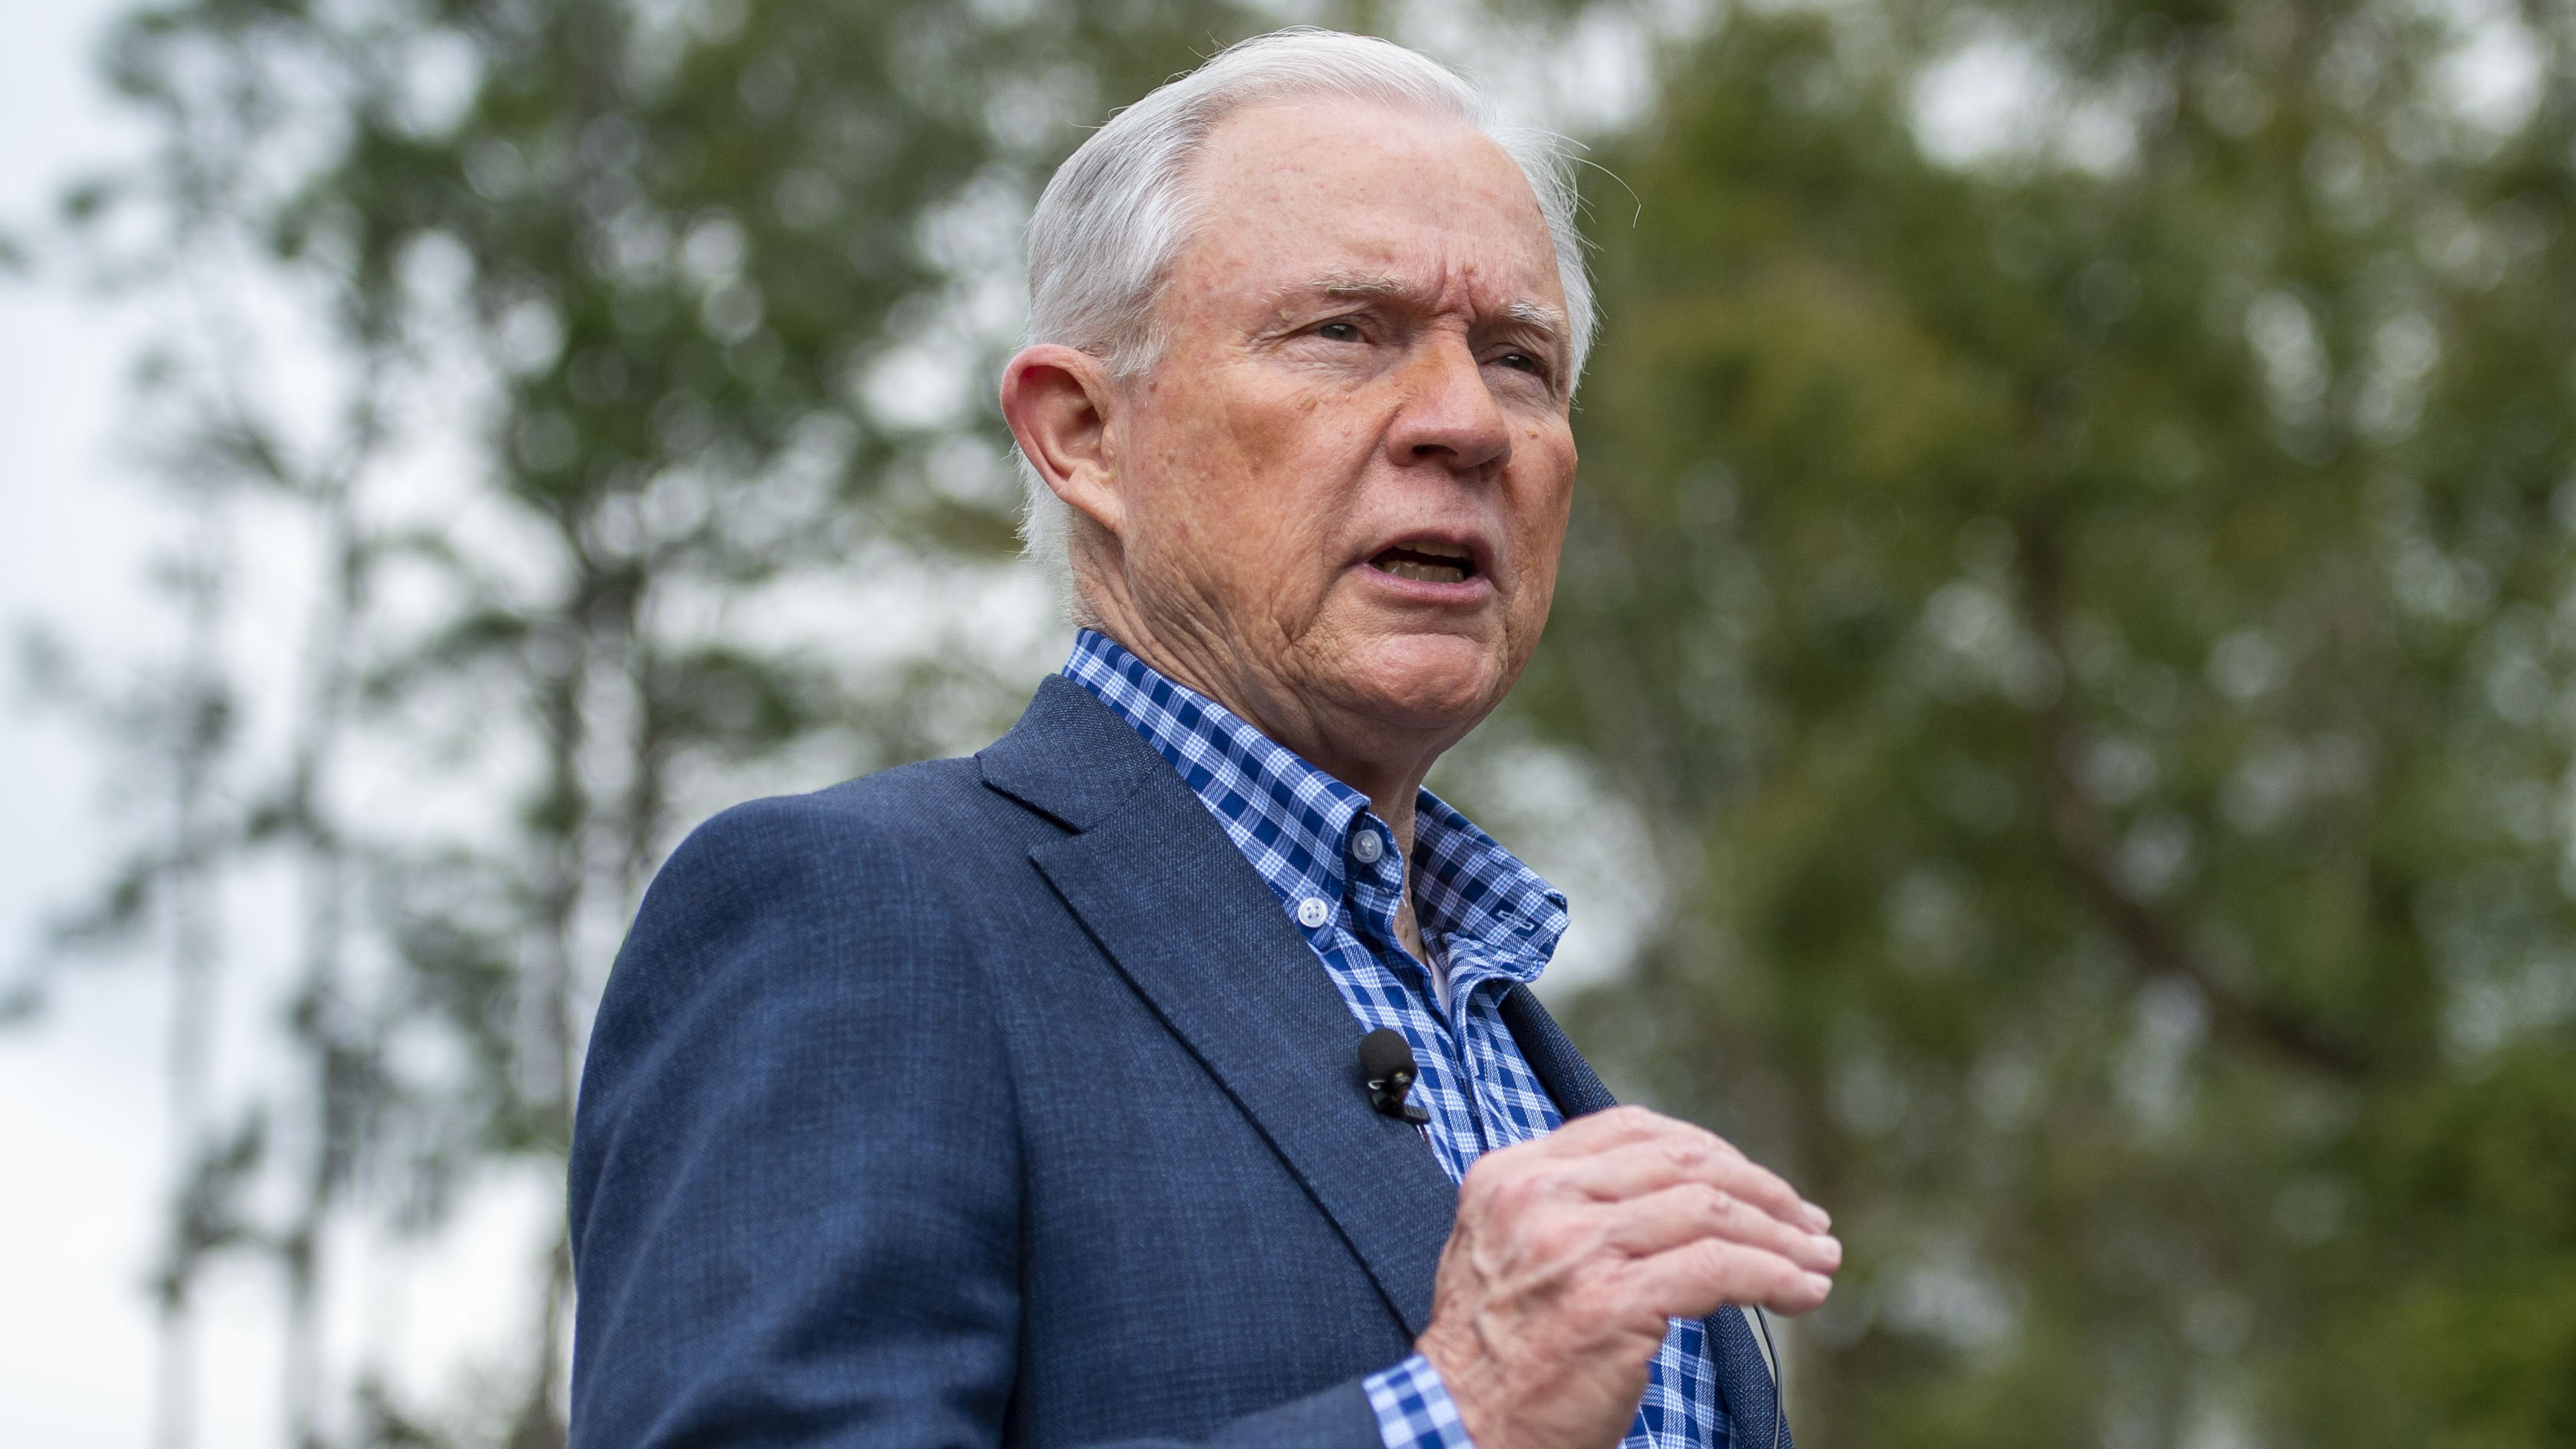 Jeff Sessions talks with the media after voting in Alabama's primary election, on March 3 in Mobile, Ala.